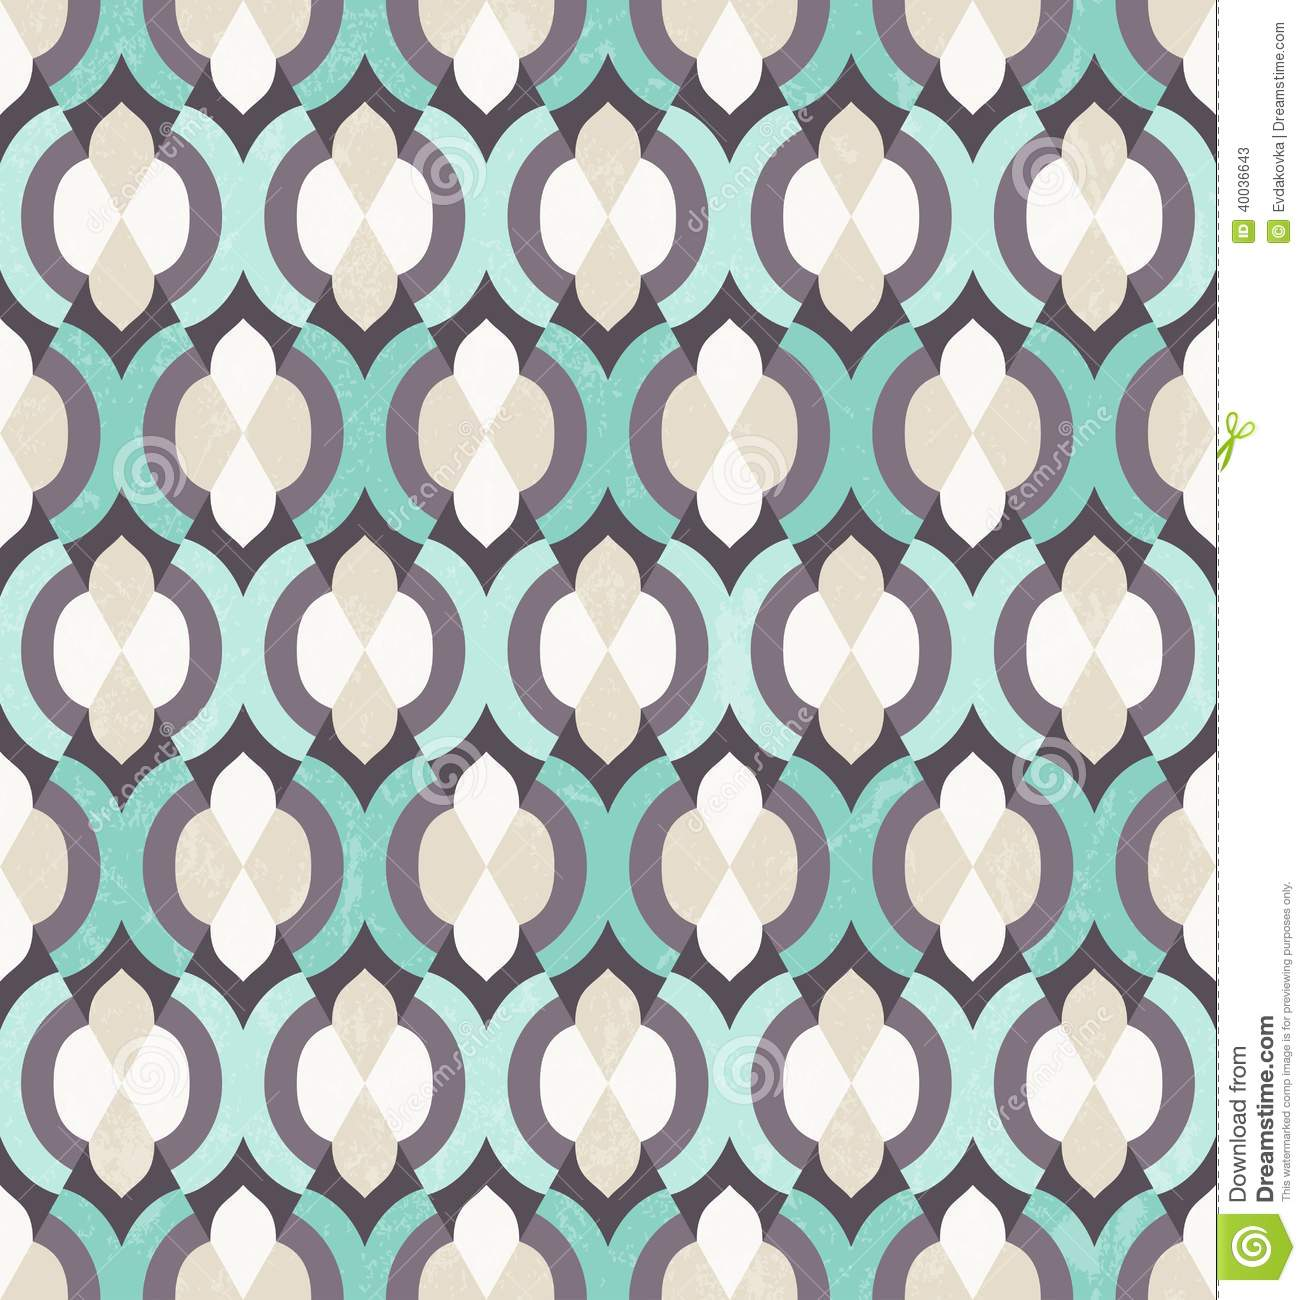 Moroccan geometric pattern royalty free stock photos image 13547078 - Vector Seamless Background Moroccan Wallpaper Eps 10 1306x1300 Ornamental Pattern Seamless Moroccan Background Stock Vector 1500x1600